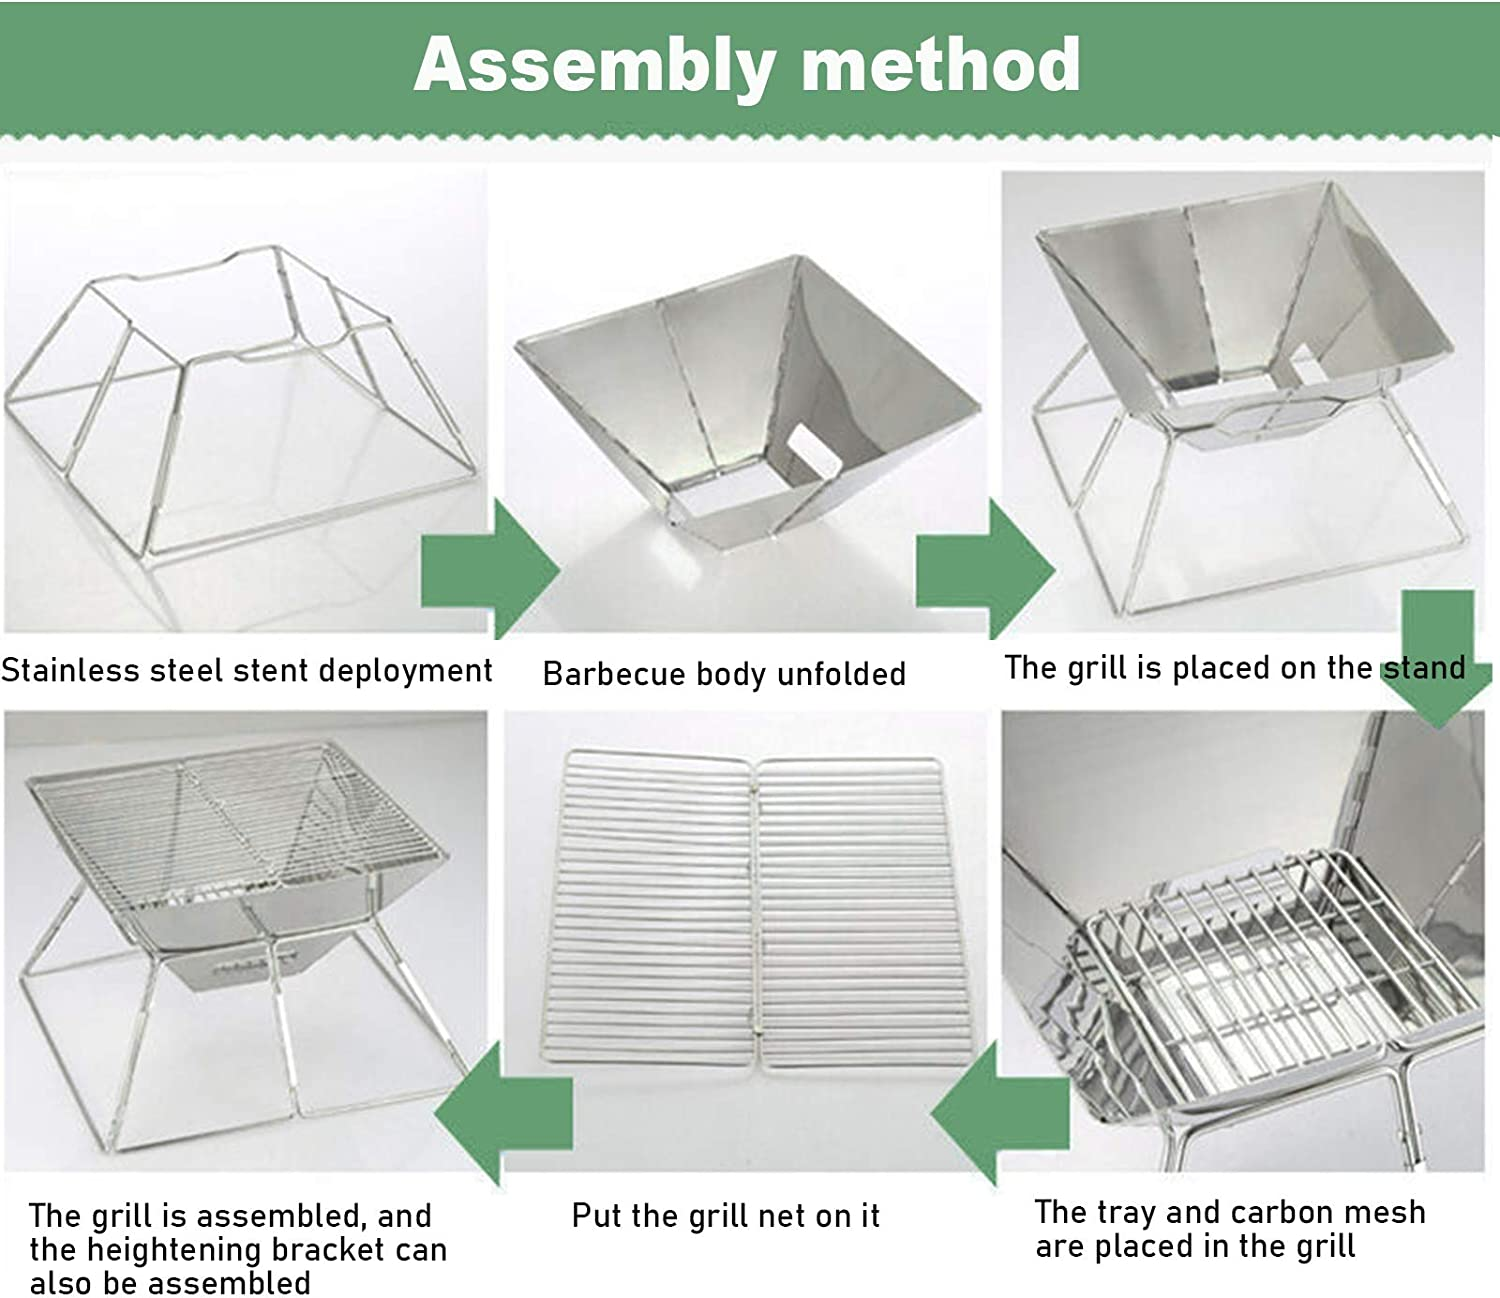 Folding Campfire Grill,Portable Camping Grill,Folding Compact Premium Stainless Steel Barbeque Grill with Lifting Net and Carrying Bag,for Outside Picnic Home BBQ